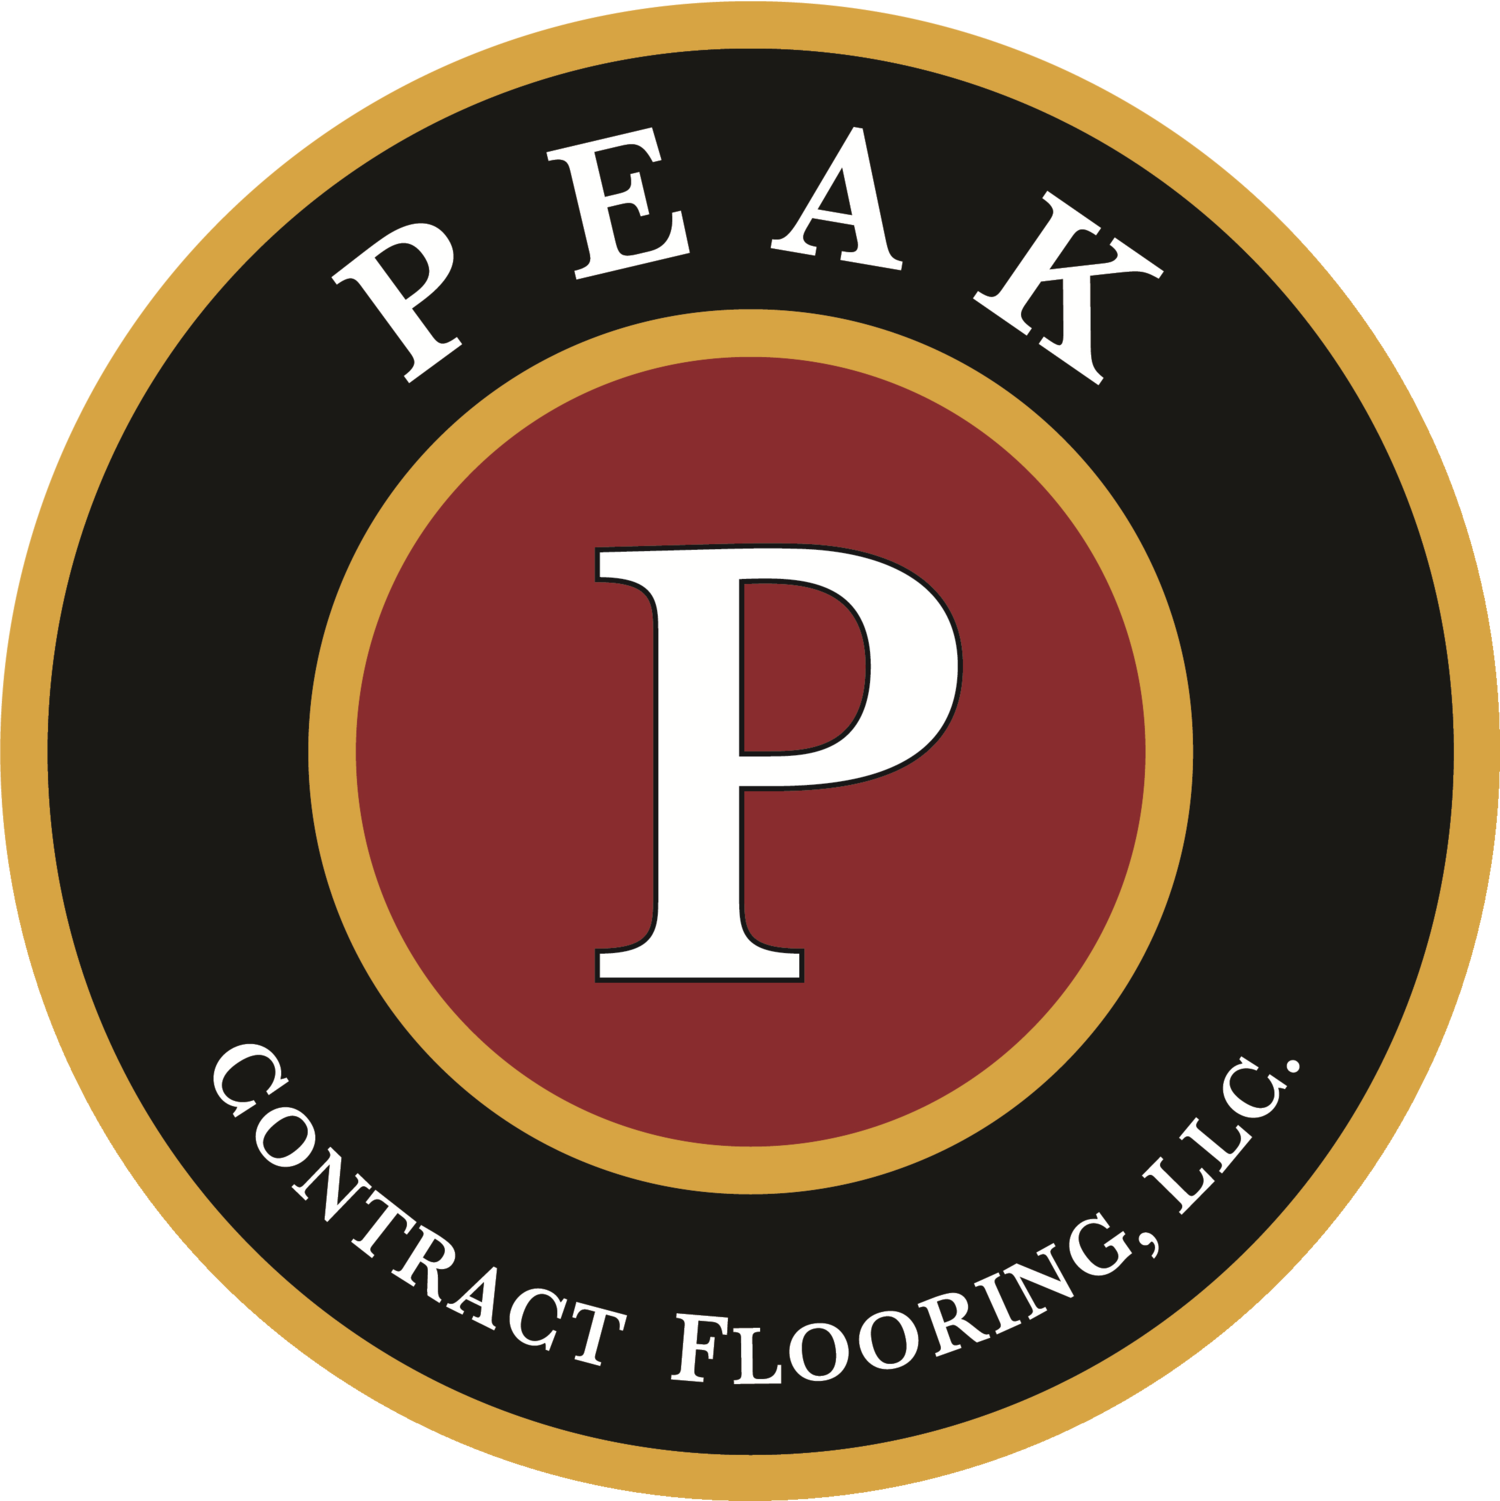 Peak Contract Flooring, LLC